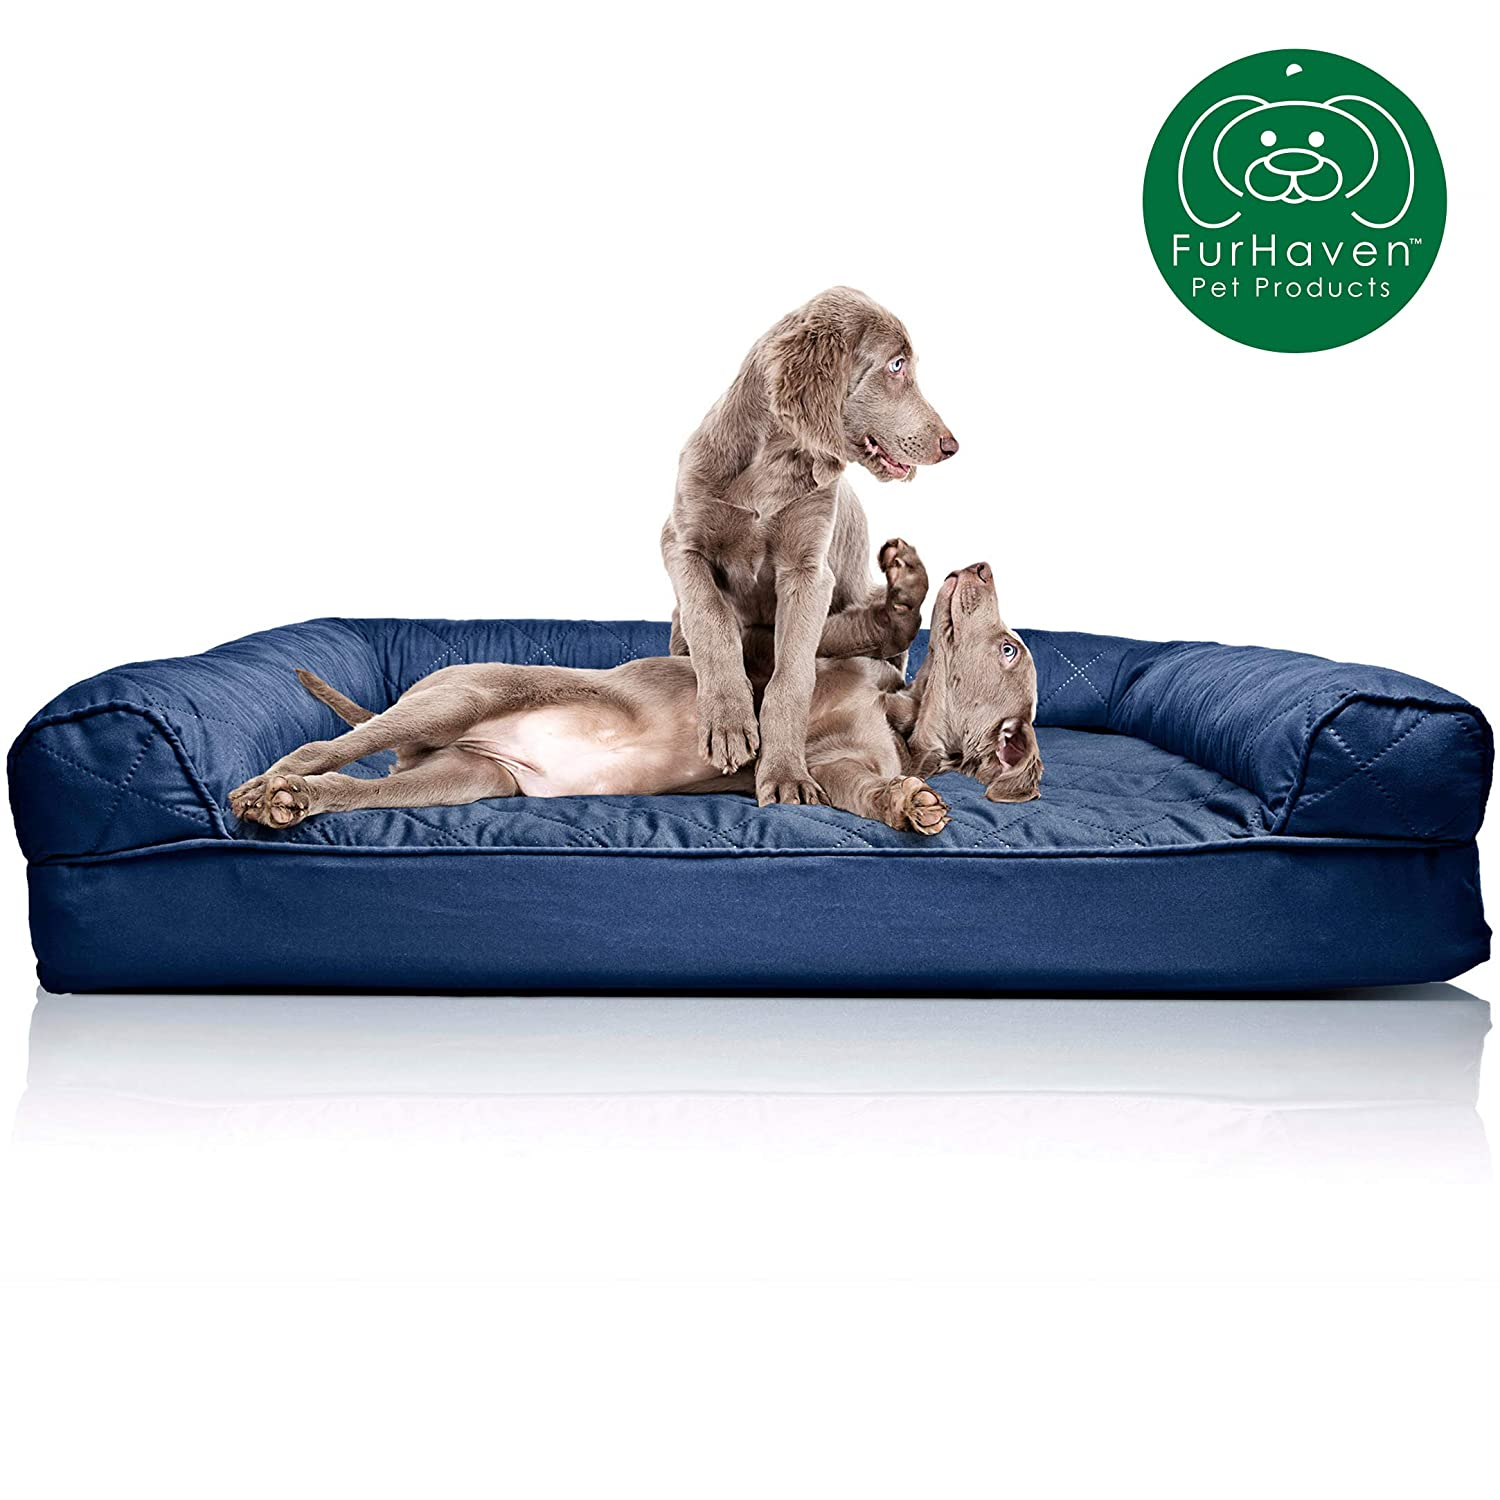 Pleasing Furhaven Pet Dog Bed Orthopedic Sofa Style Traditional Living Room Couch Pet Bed W Removable Cover For Dogs Cats Available In Multiple Colors Gmtry Best Dining Table And Chair Ideas Images Gmtryco